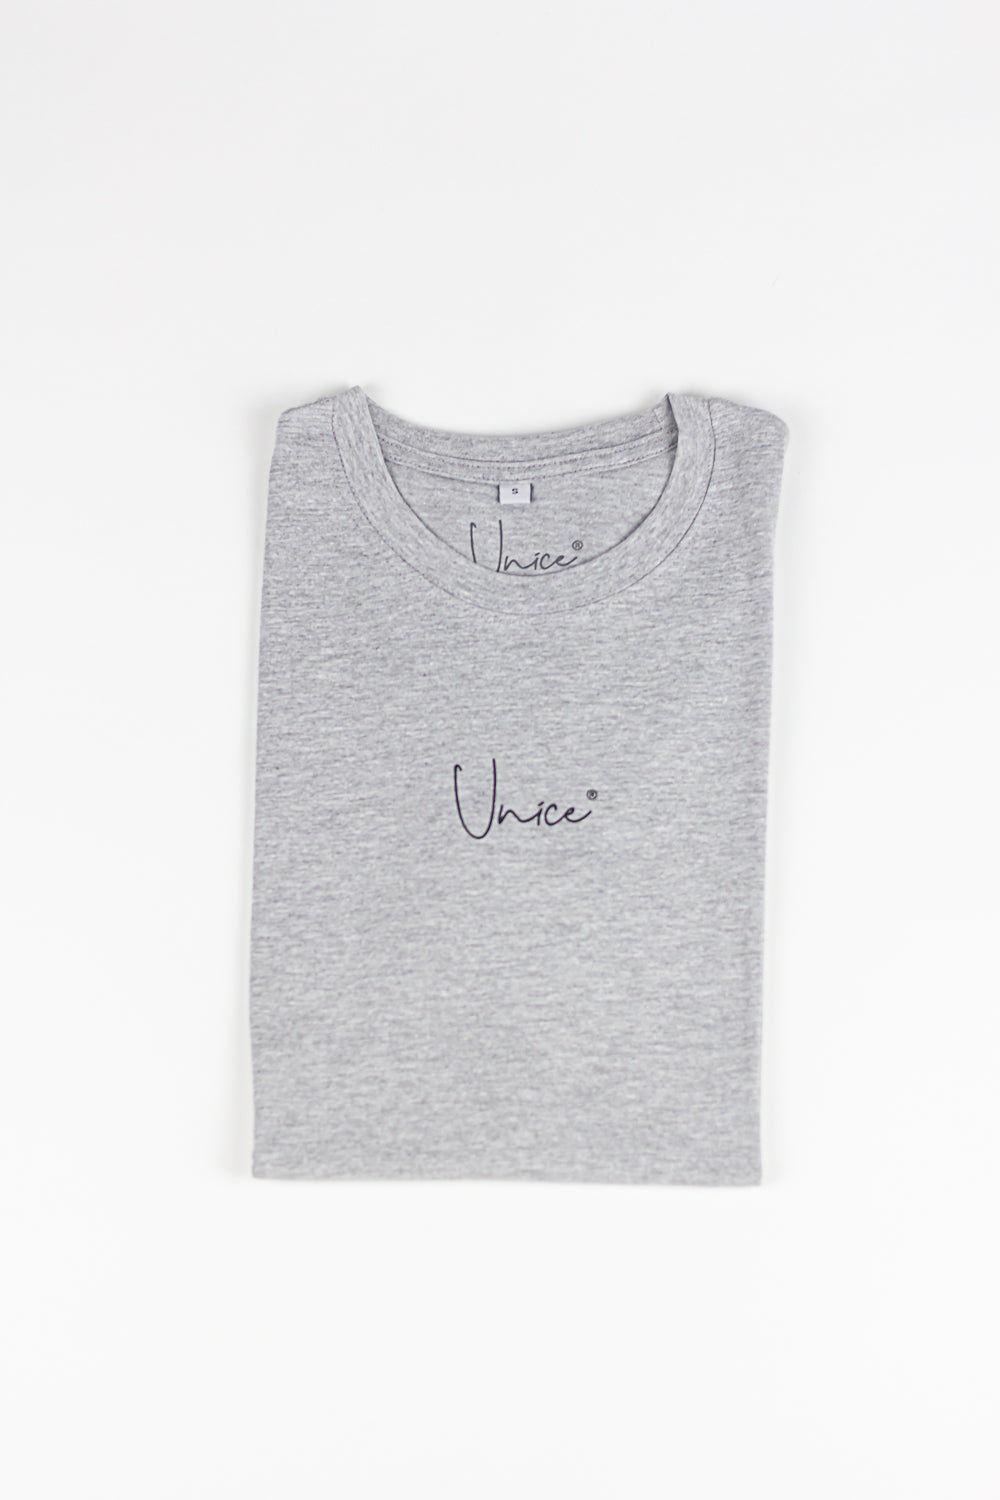 2. Unice T-shirt GREY